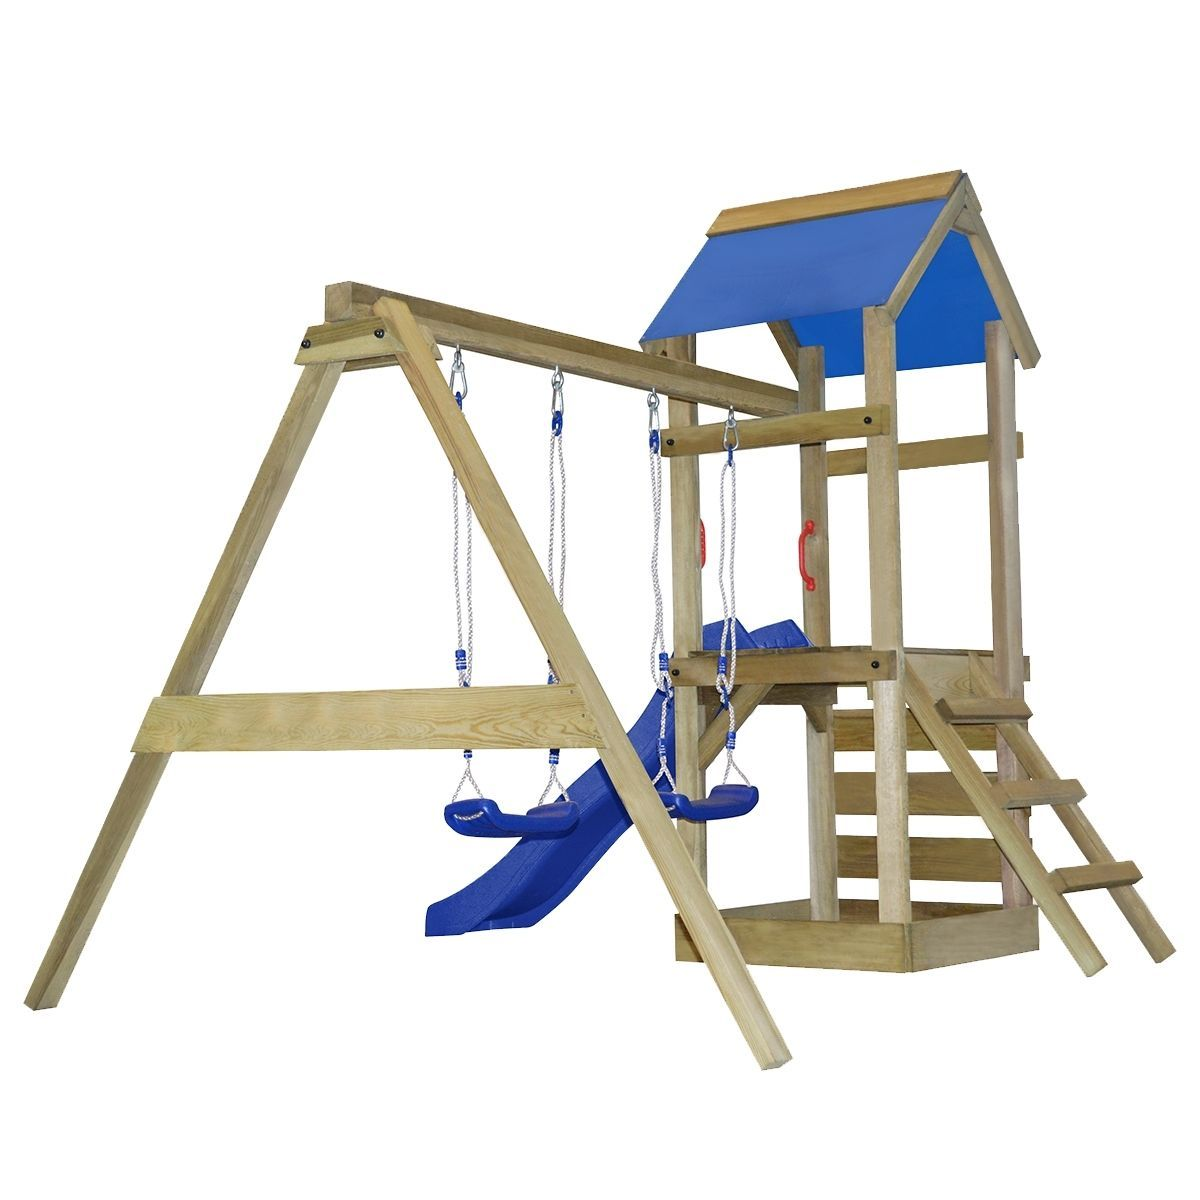 swing / slide set diy build inspiration | Outdoor toys & Summer Fun ...